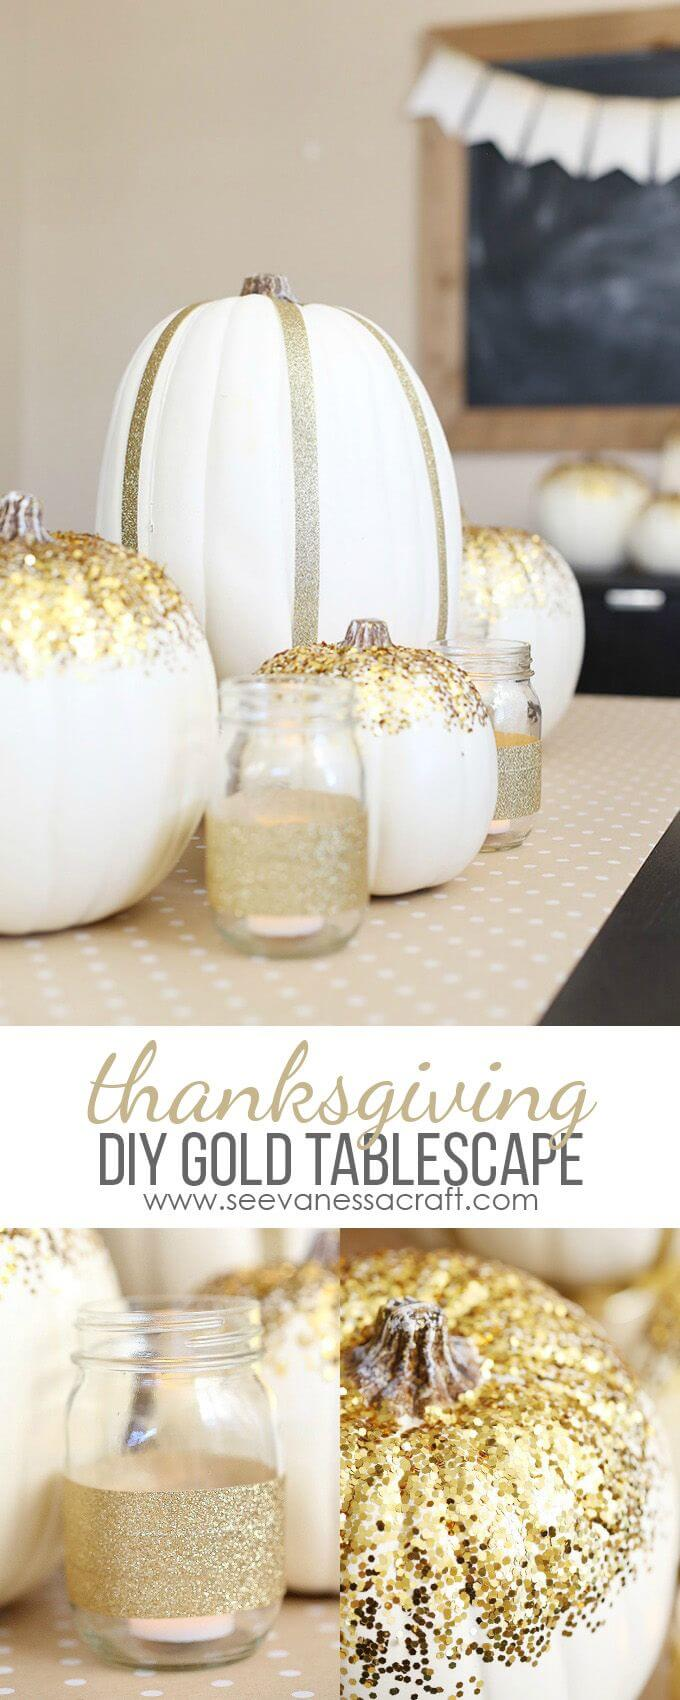 Glitter and Gold Centerpiece Featuring Pumpkins